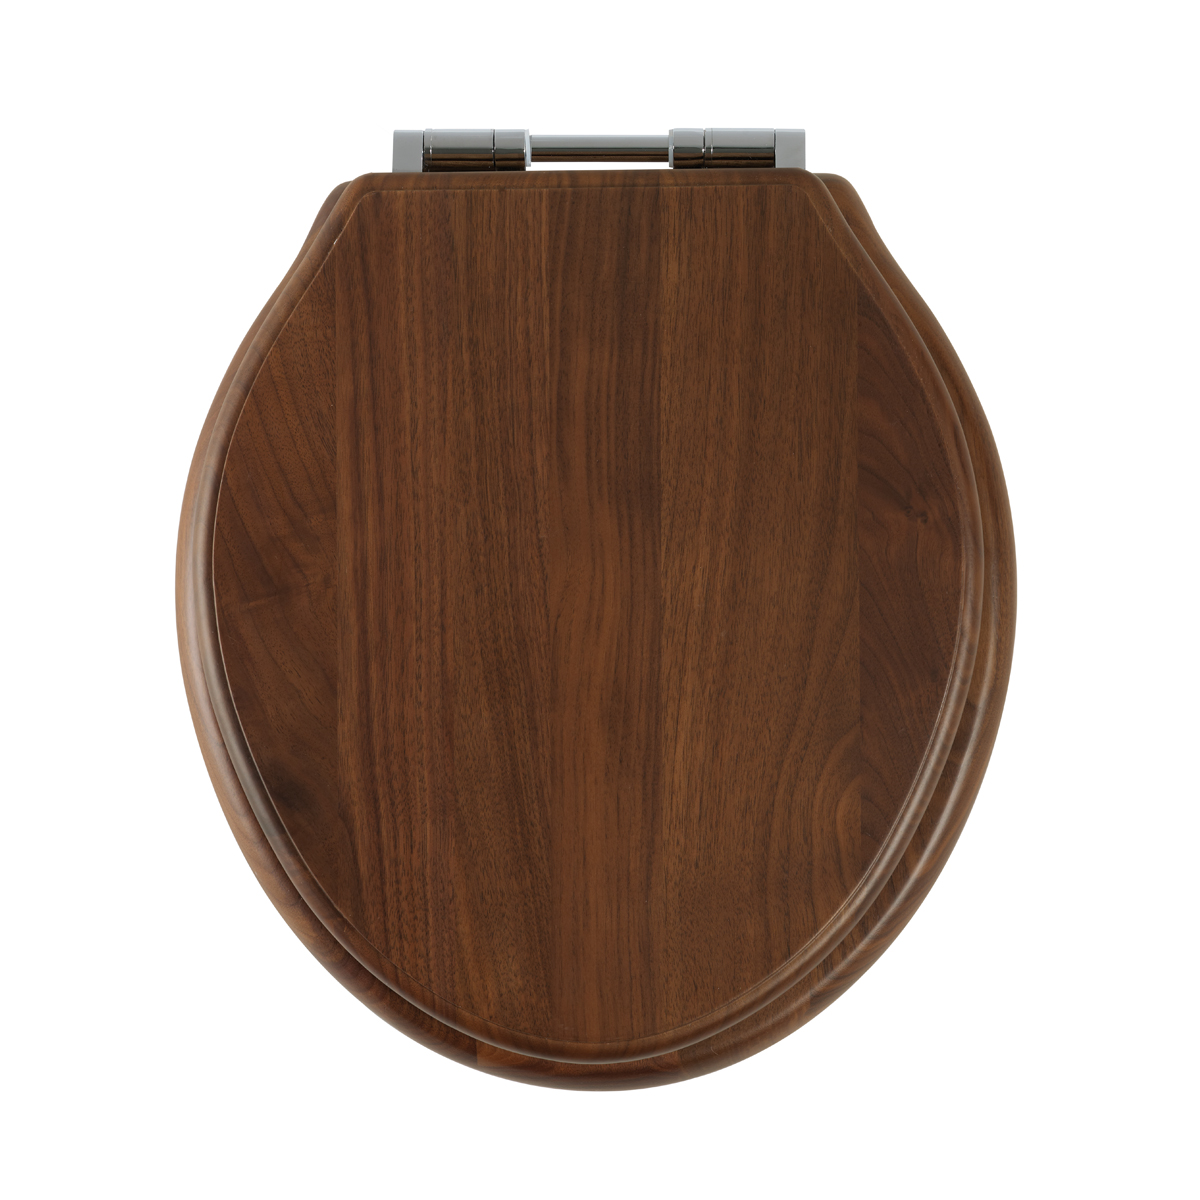 Roper Rhodes Greenwich Walnut Real Wood Toilet Seat Soft Close Hinge Bathroom